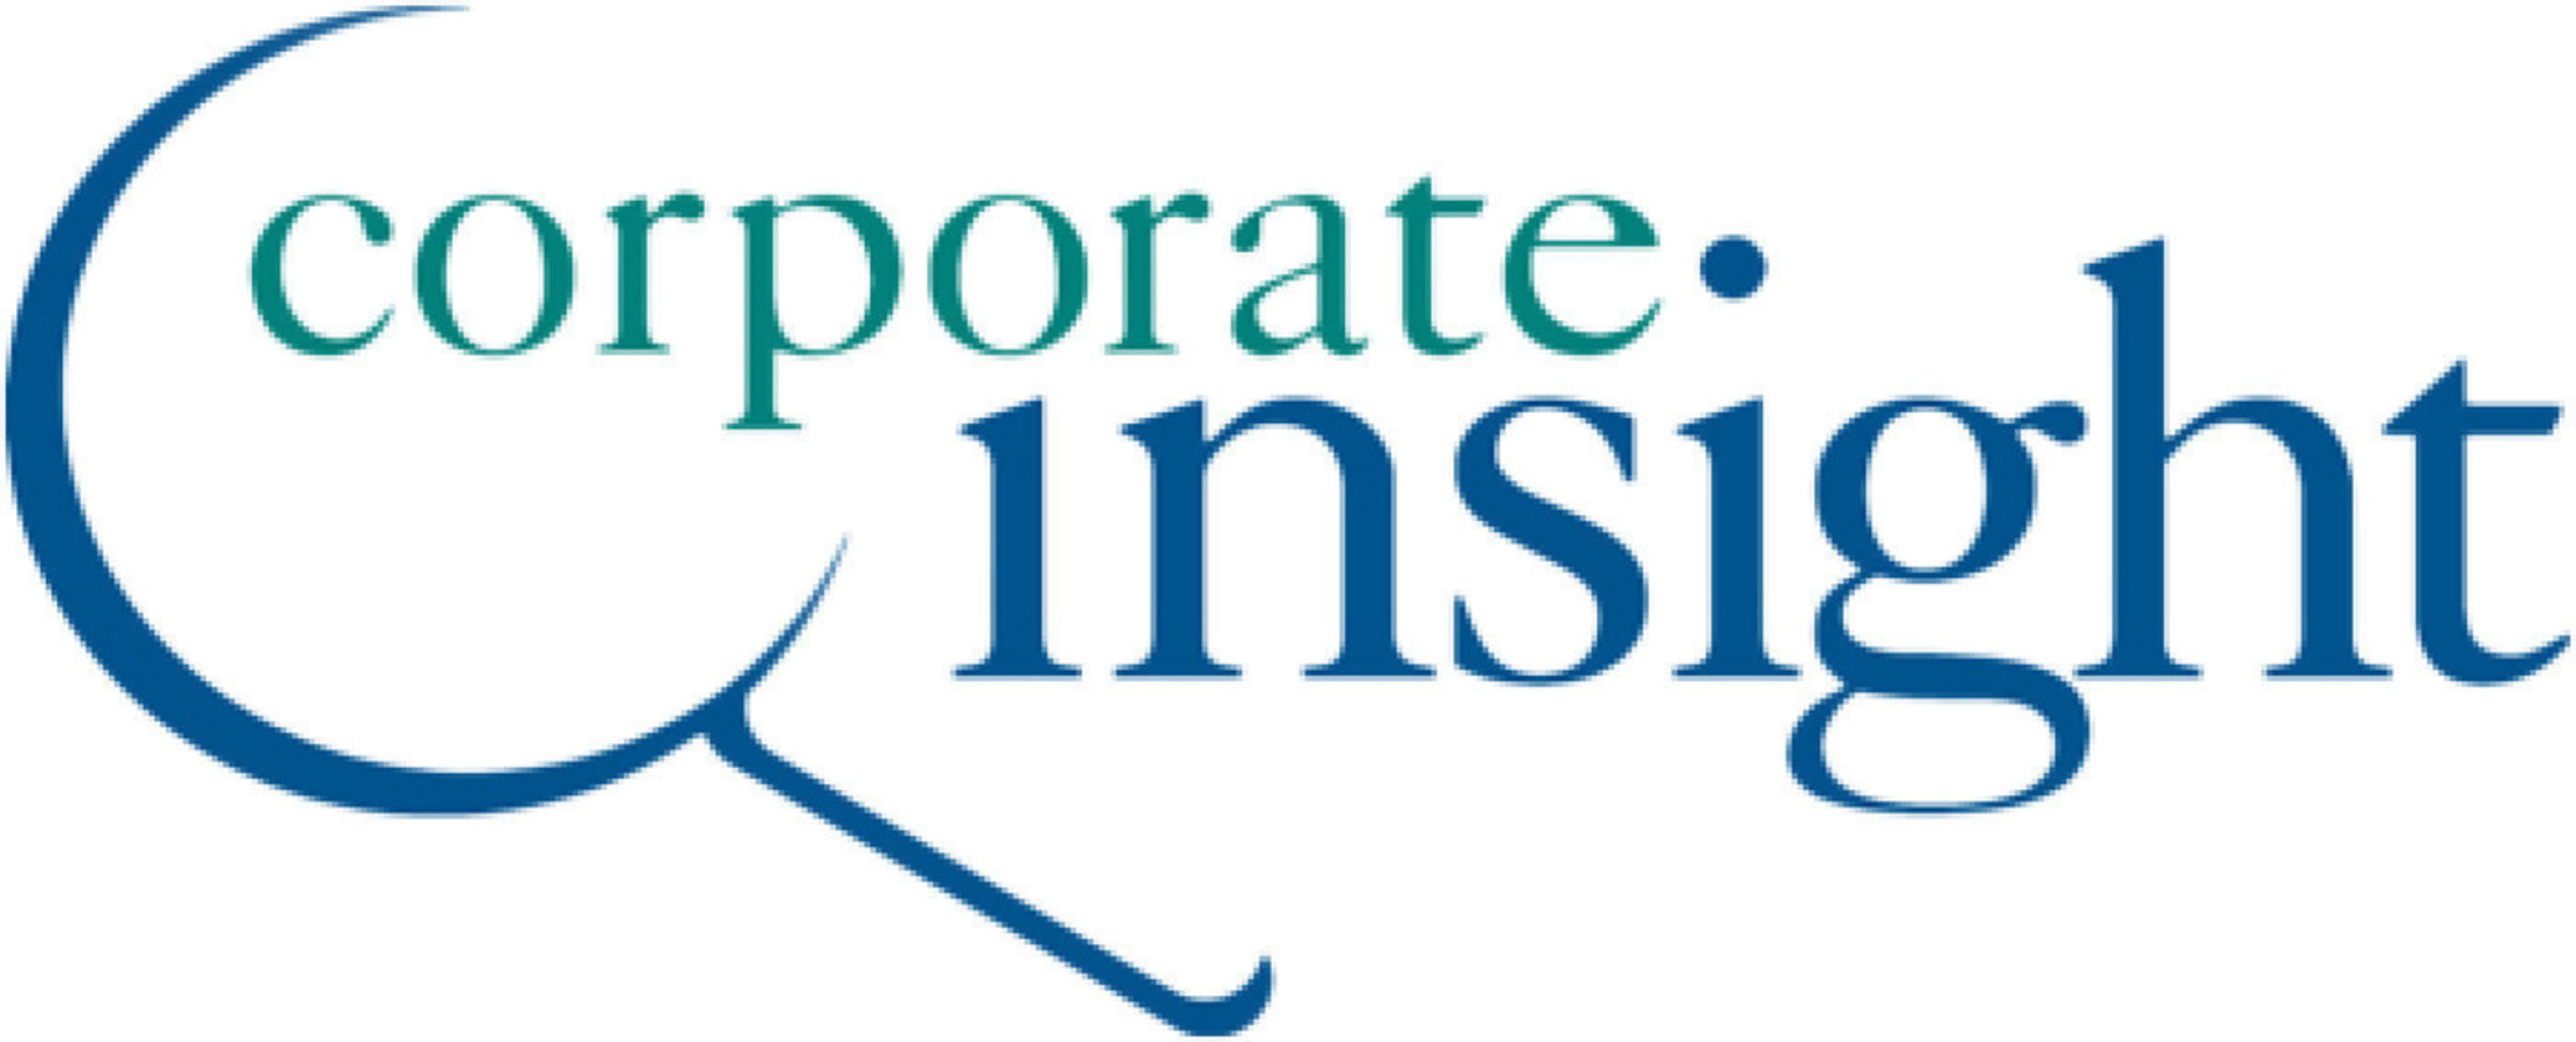 Corporate Insight provides competitive intelligence, consulting and user experience research to the nation's leading financial institutions. For more than two decades, the firm has tracked technological developments in the financial services industry, identifying best practices in online banking and investing, online insurance, mobile finance, active trading platforms, social media and other emerging areas. The firm helps its clients to remain at the forefront of industry trends and improve their competitive position. Learn more at www.corporateinsight.com/about-us. Connect with us on Facebook, Twitter (CInsight) and LinkedIn.